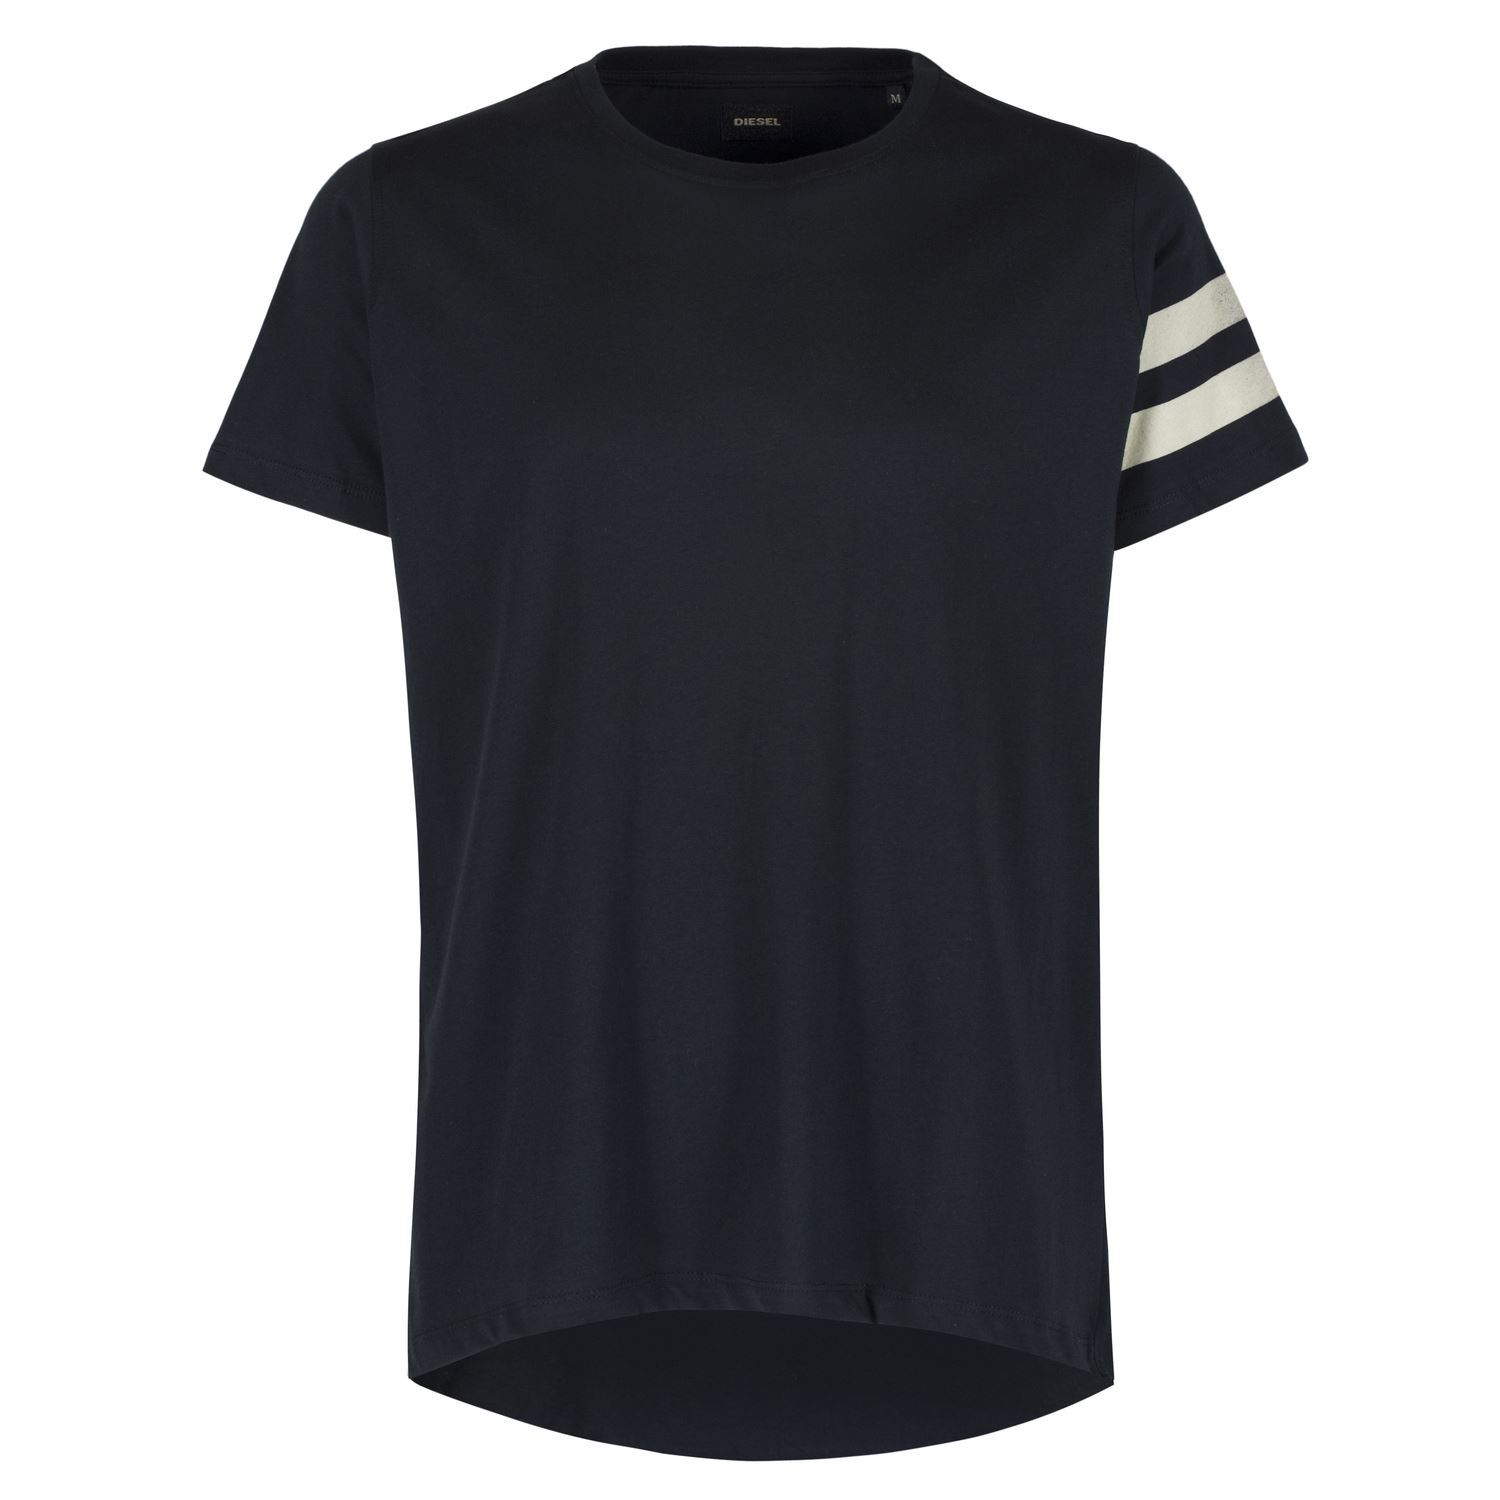 Black t shirt with white stripes - Image Is Loading Diesel Ignatios Black Shirt White Stripes Printed Back